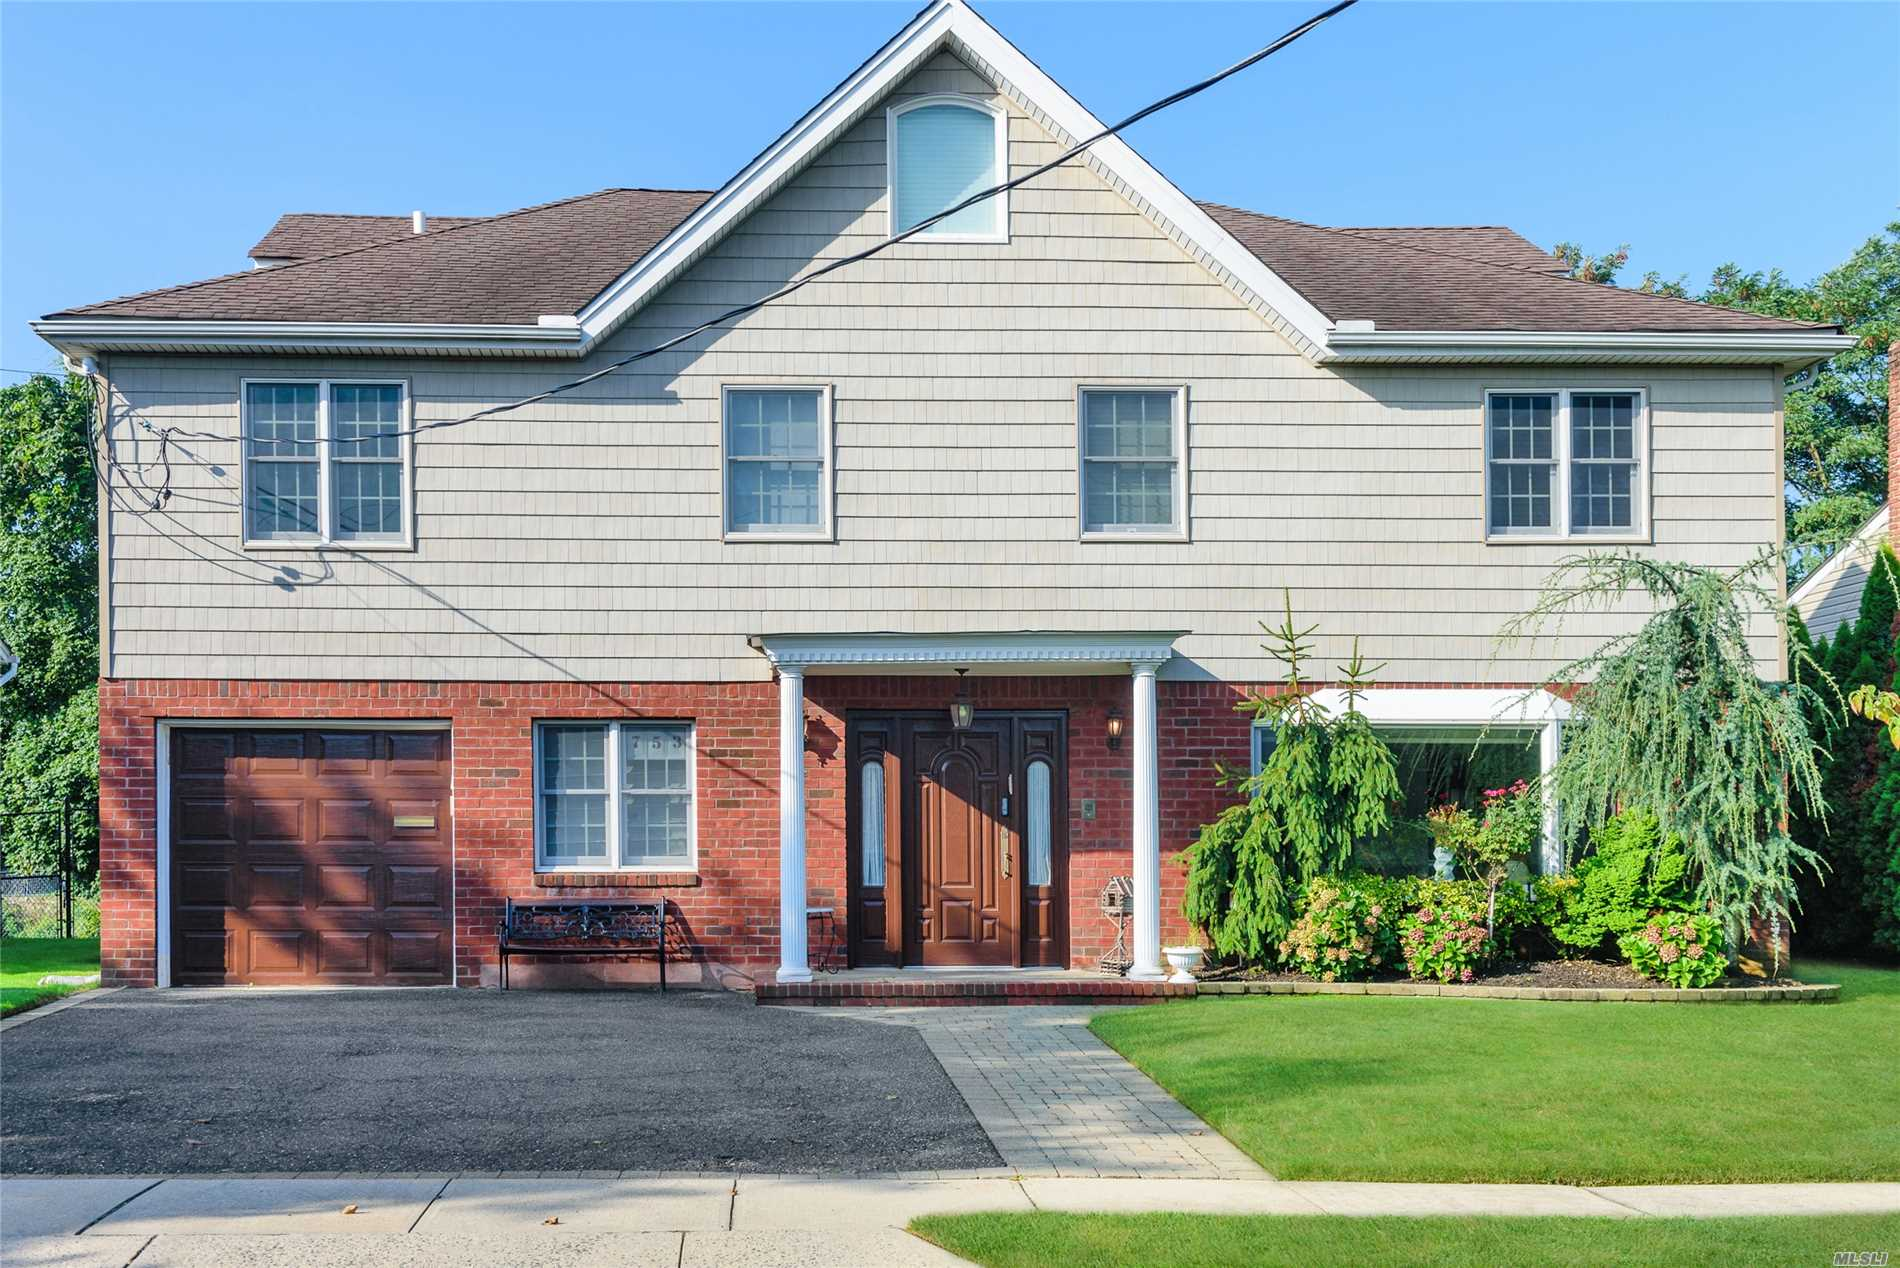 Full House Renovation.. Everything Is New. Radiant Heat On The Entire 1st Floor Other Than The Lr & Dr, Which Has Hardwood Floors, Amazing Kosher Kitchen/Granite, 10' Island, 3 Sinks, 3 Dishwashers, Double Wolf Oven, Warming Draw, 5 Gas Cooktop Range, Extra Frig And Freezer Draws, Microwave..5 Large Bedrooms, Walk-In-Closets, Security And Lighting System.....Waterfront With No Sandy Damage